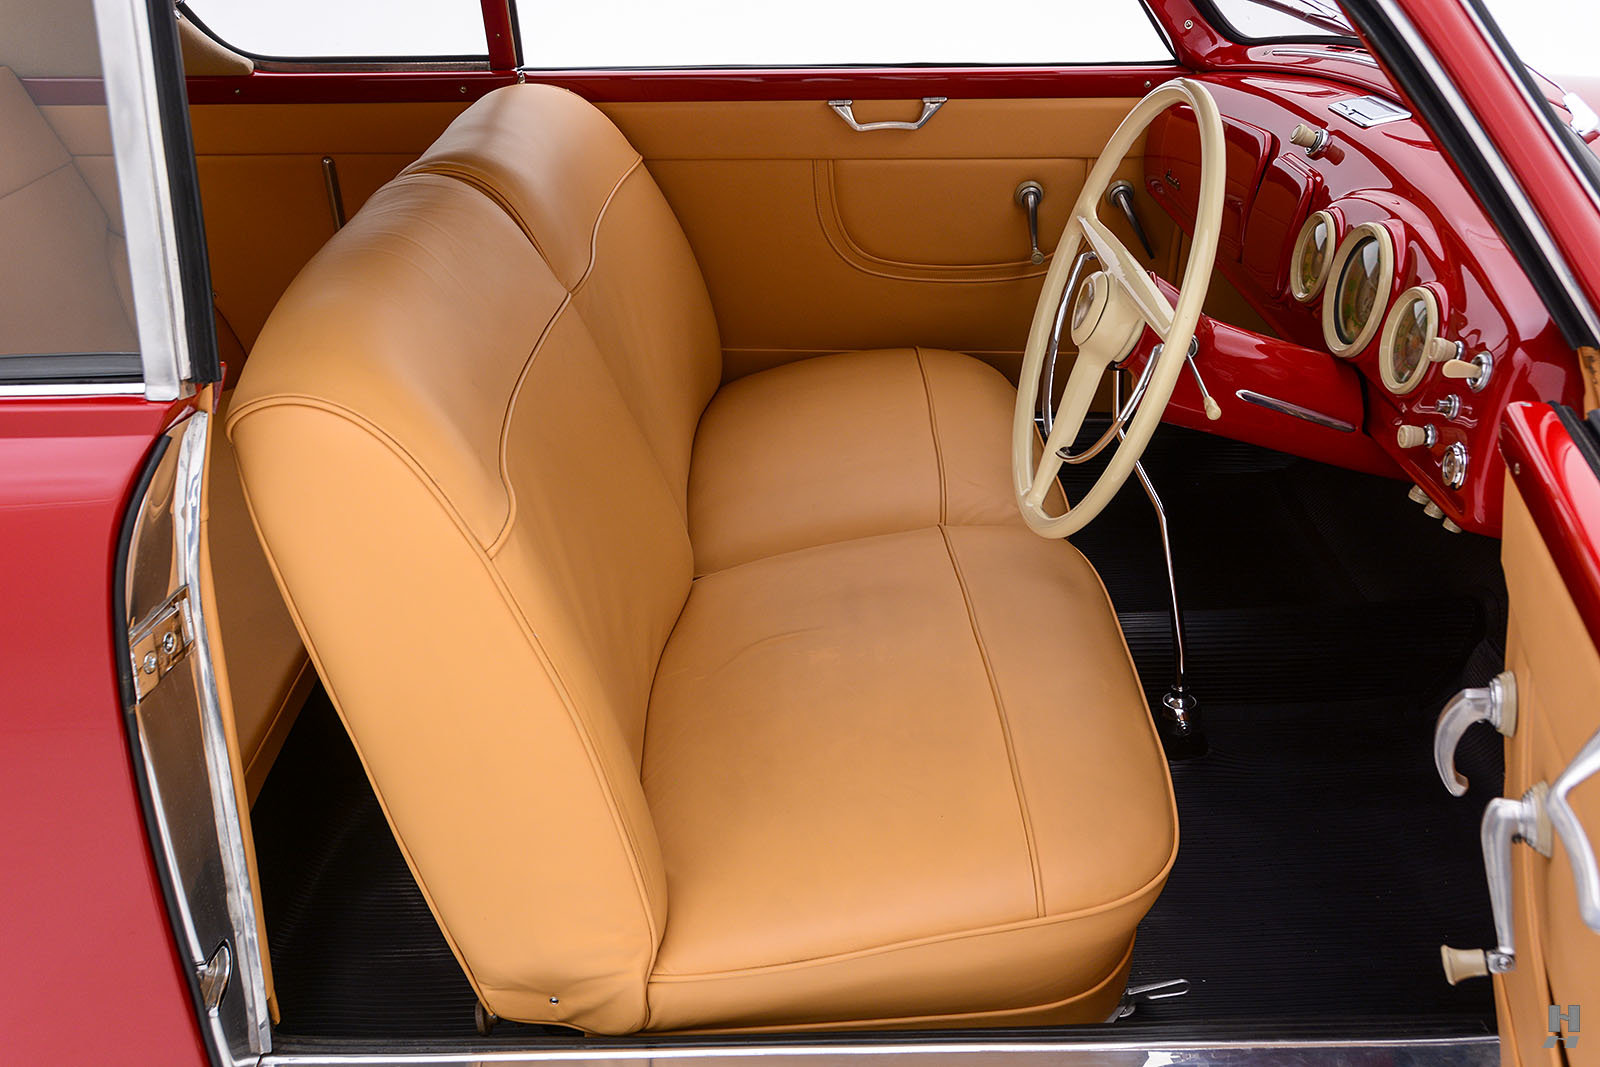 1951 LANCIA AURELIA B20GT COUPE For Sale (picture 5 of 6)